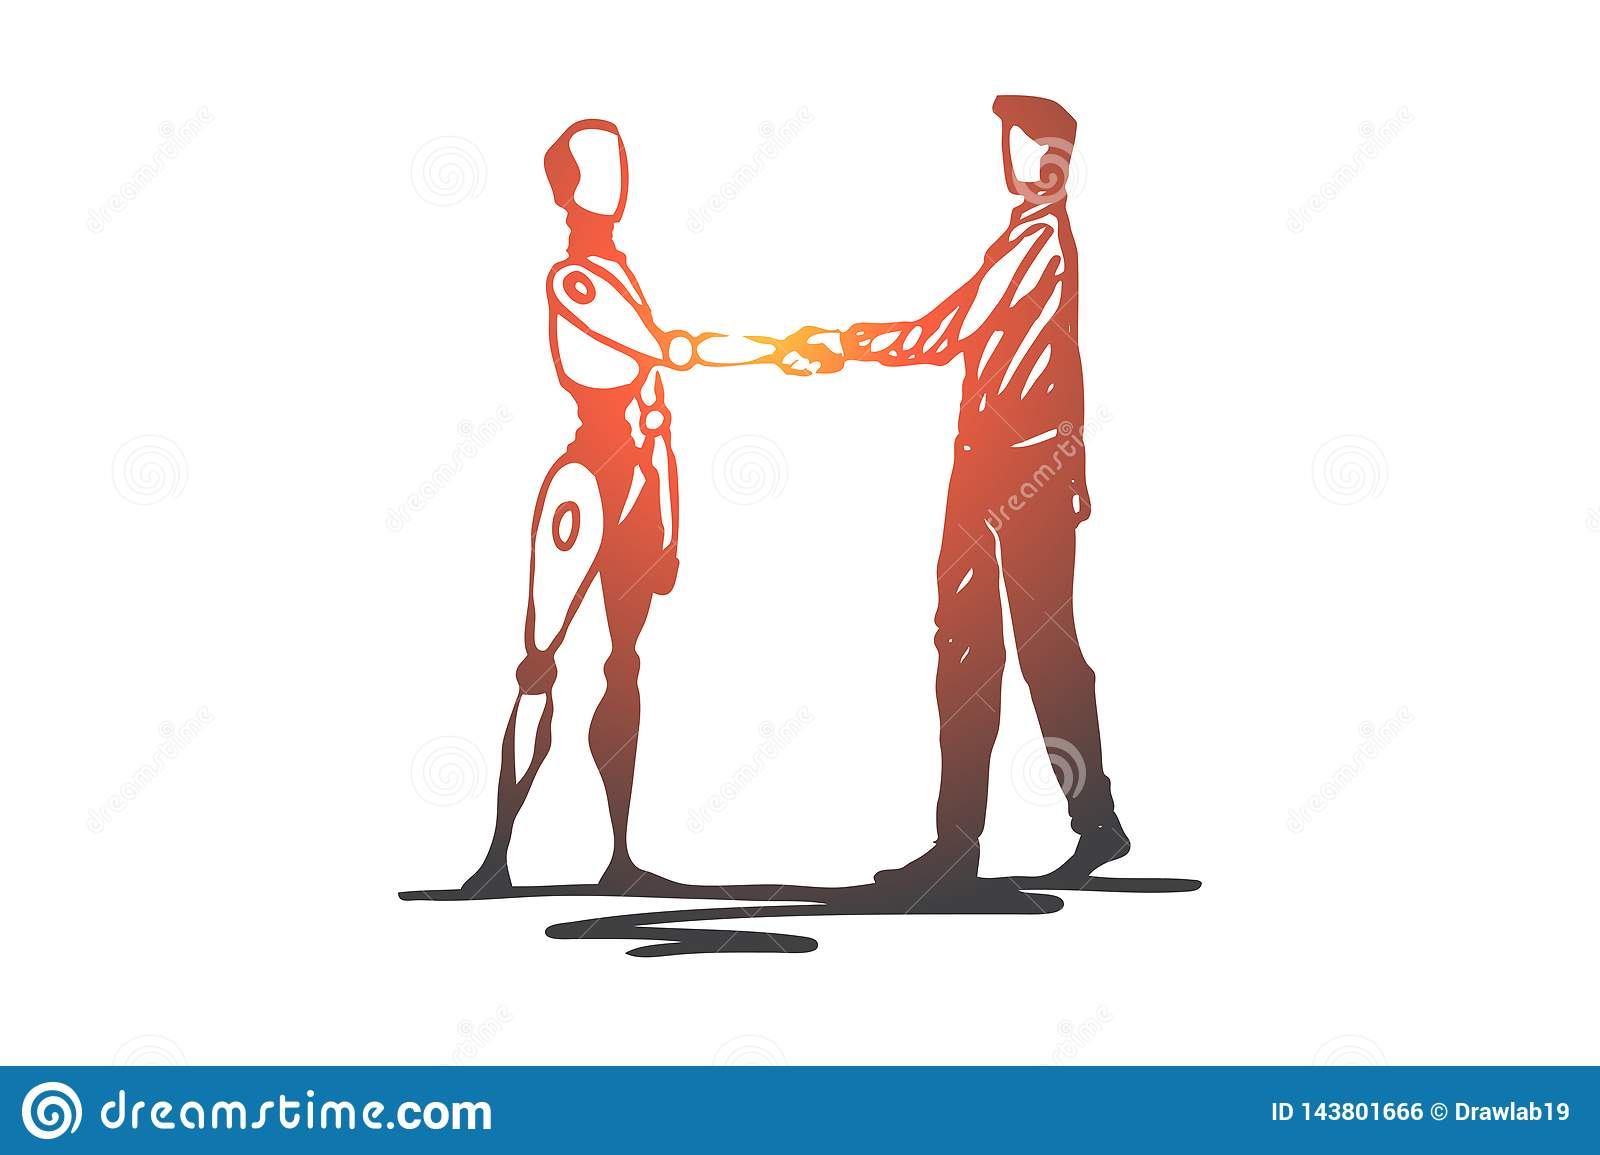 Human, robot, future, machine, technology concept. Hand drawn isolated vector.